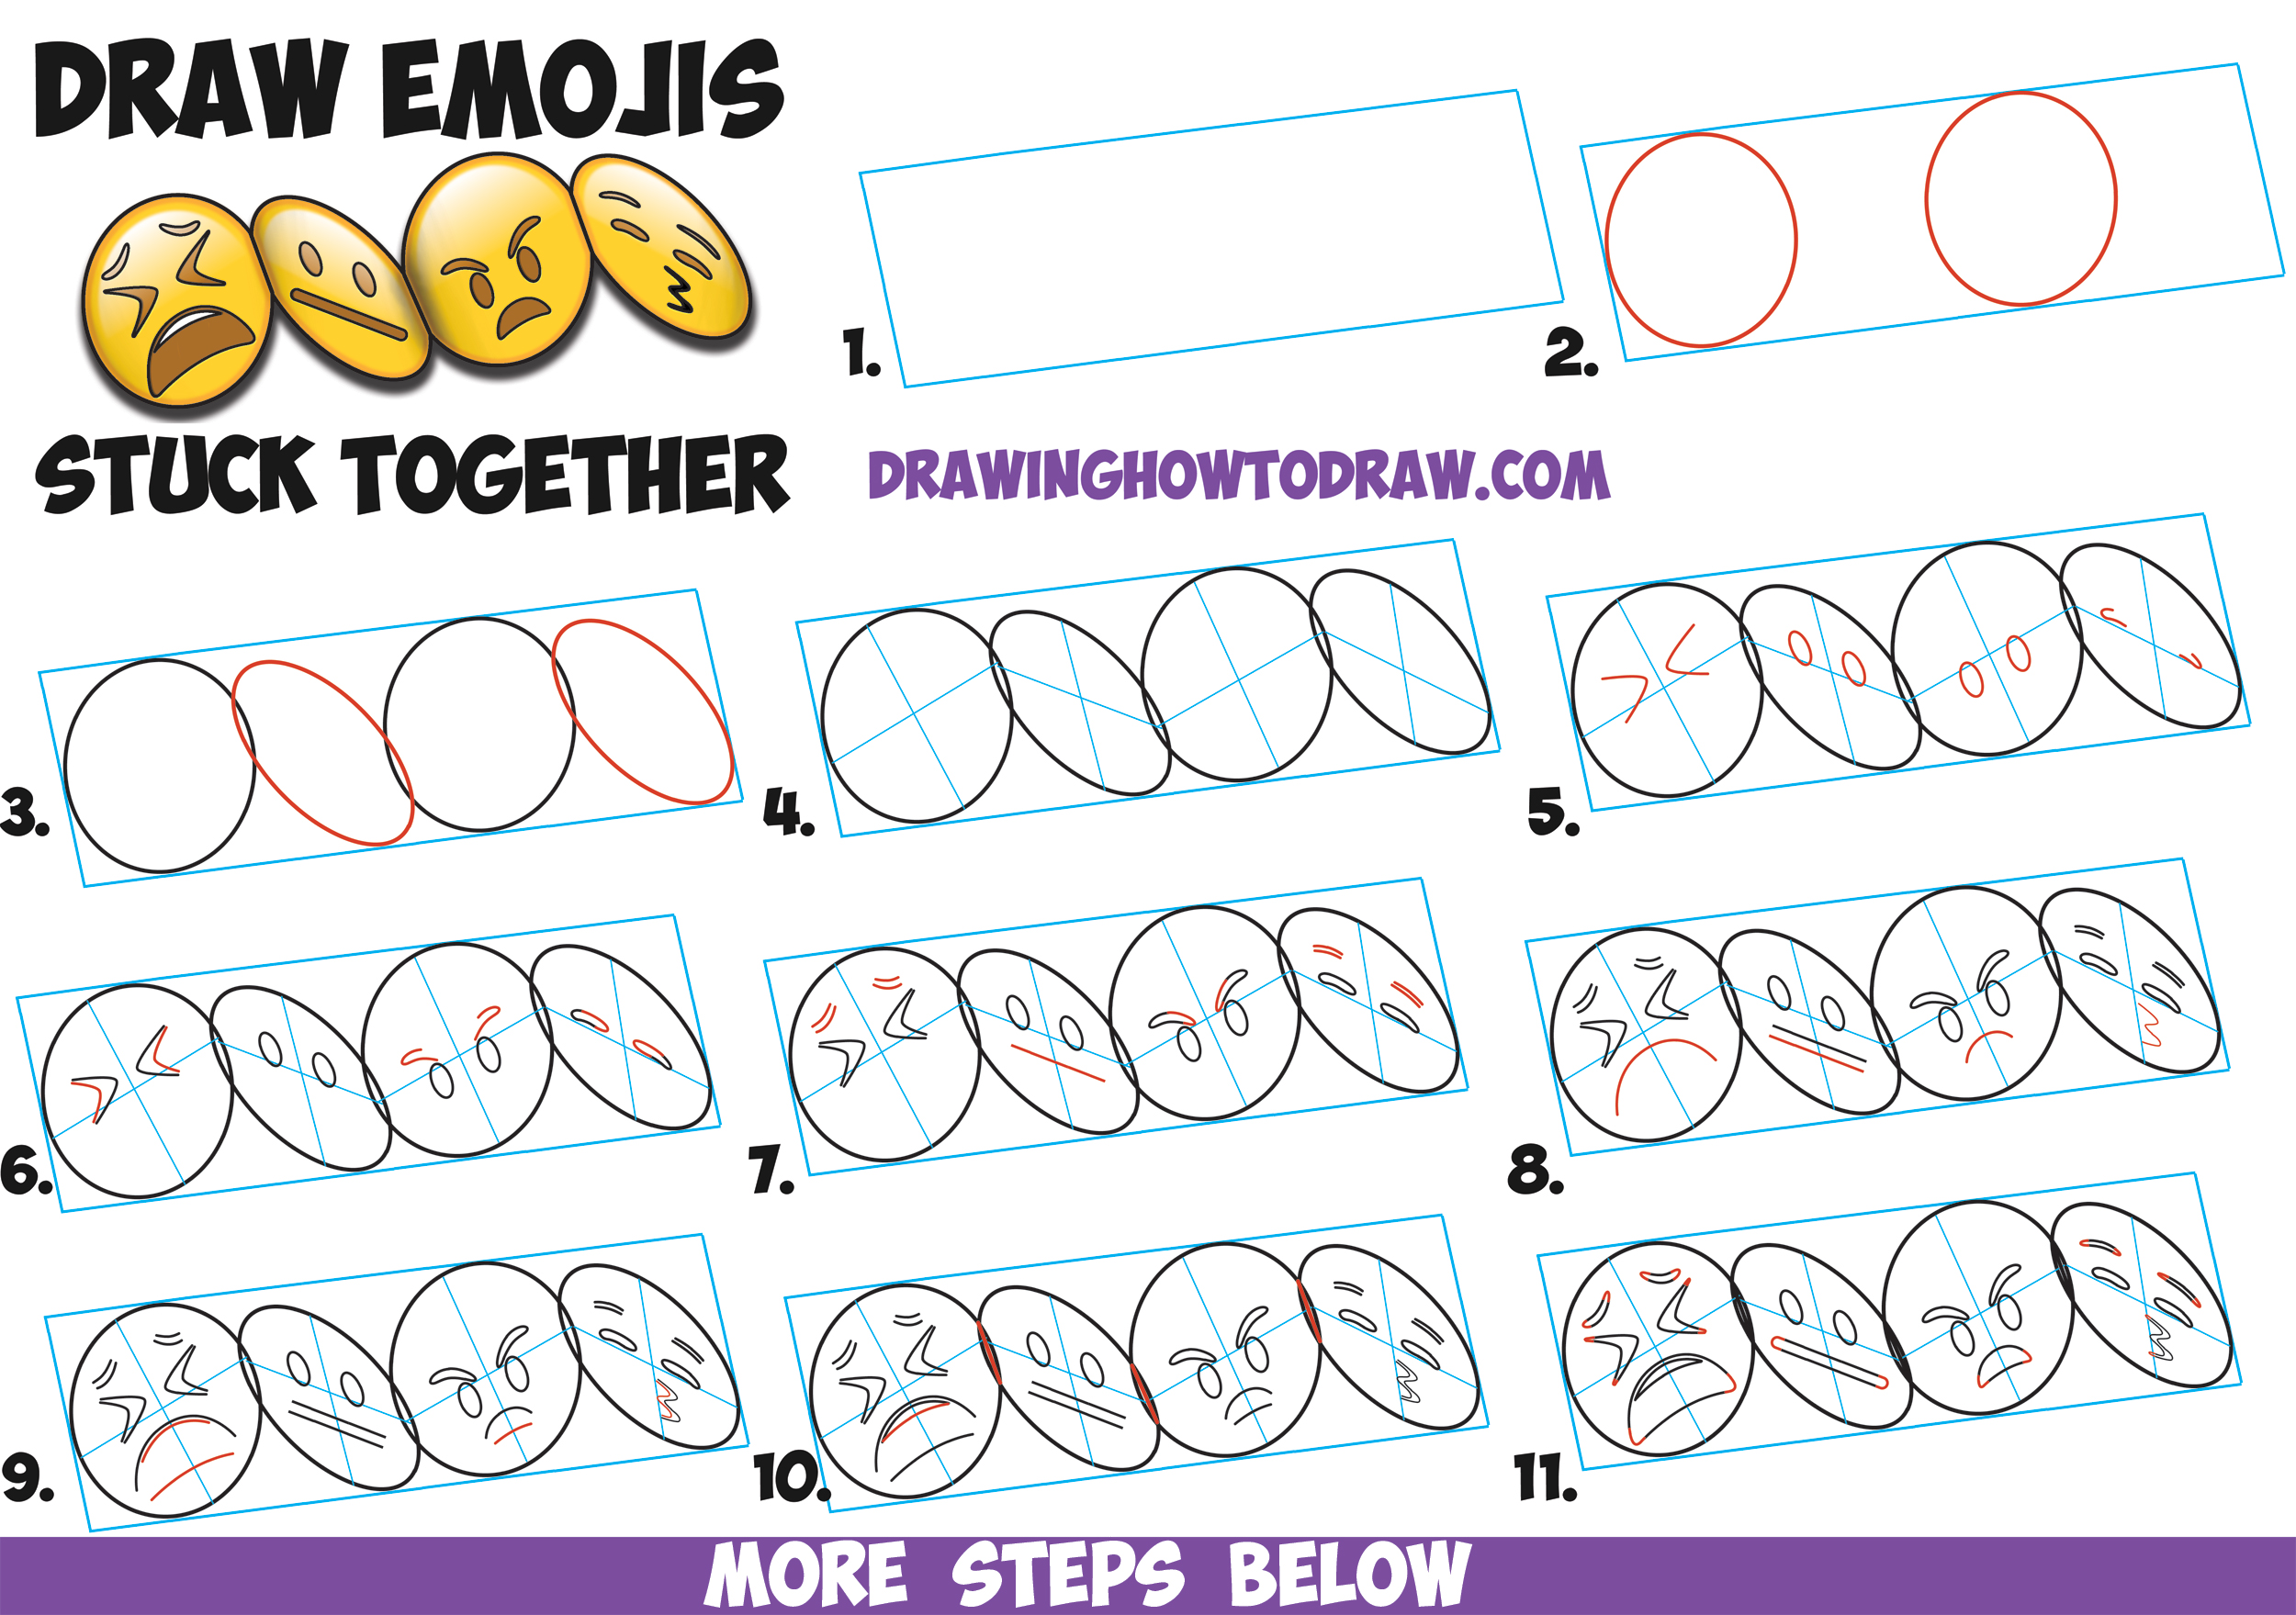 How to Draw Cool 3D Emojis Stuck Together in Accordion Fold Easy Step by Step Drawing Tutorial for Kids